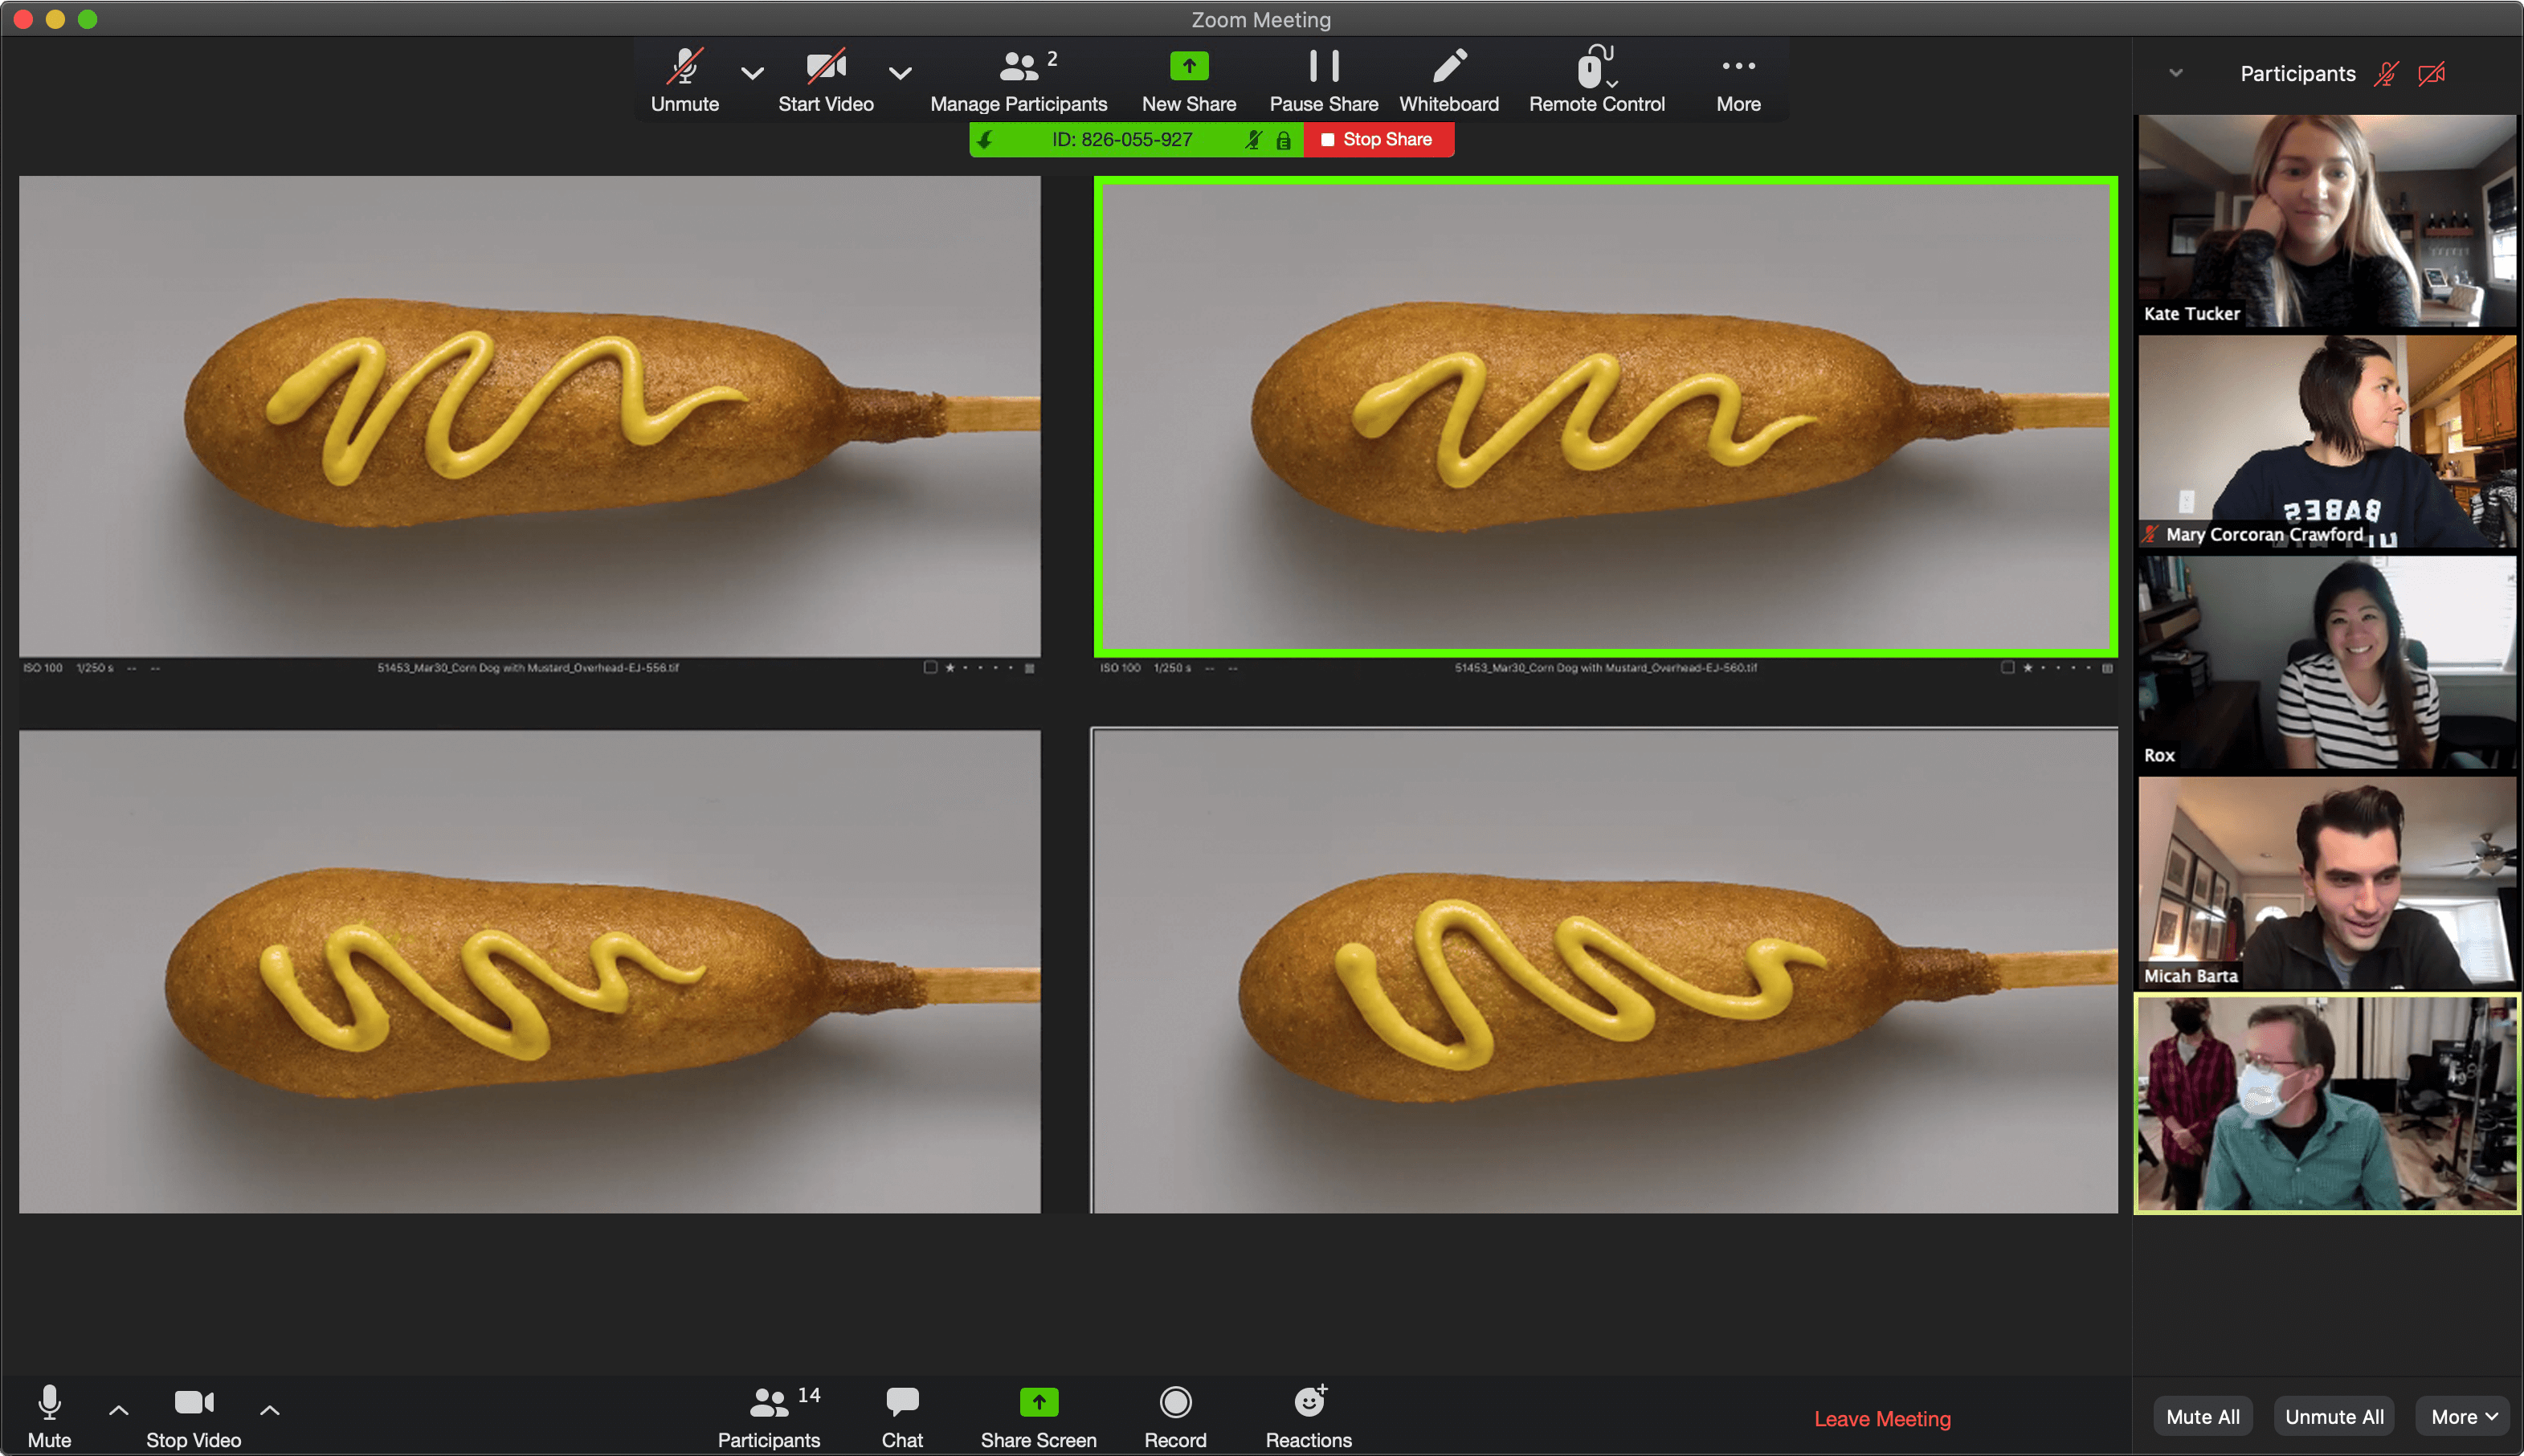 Selecting Corndog Photos